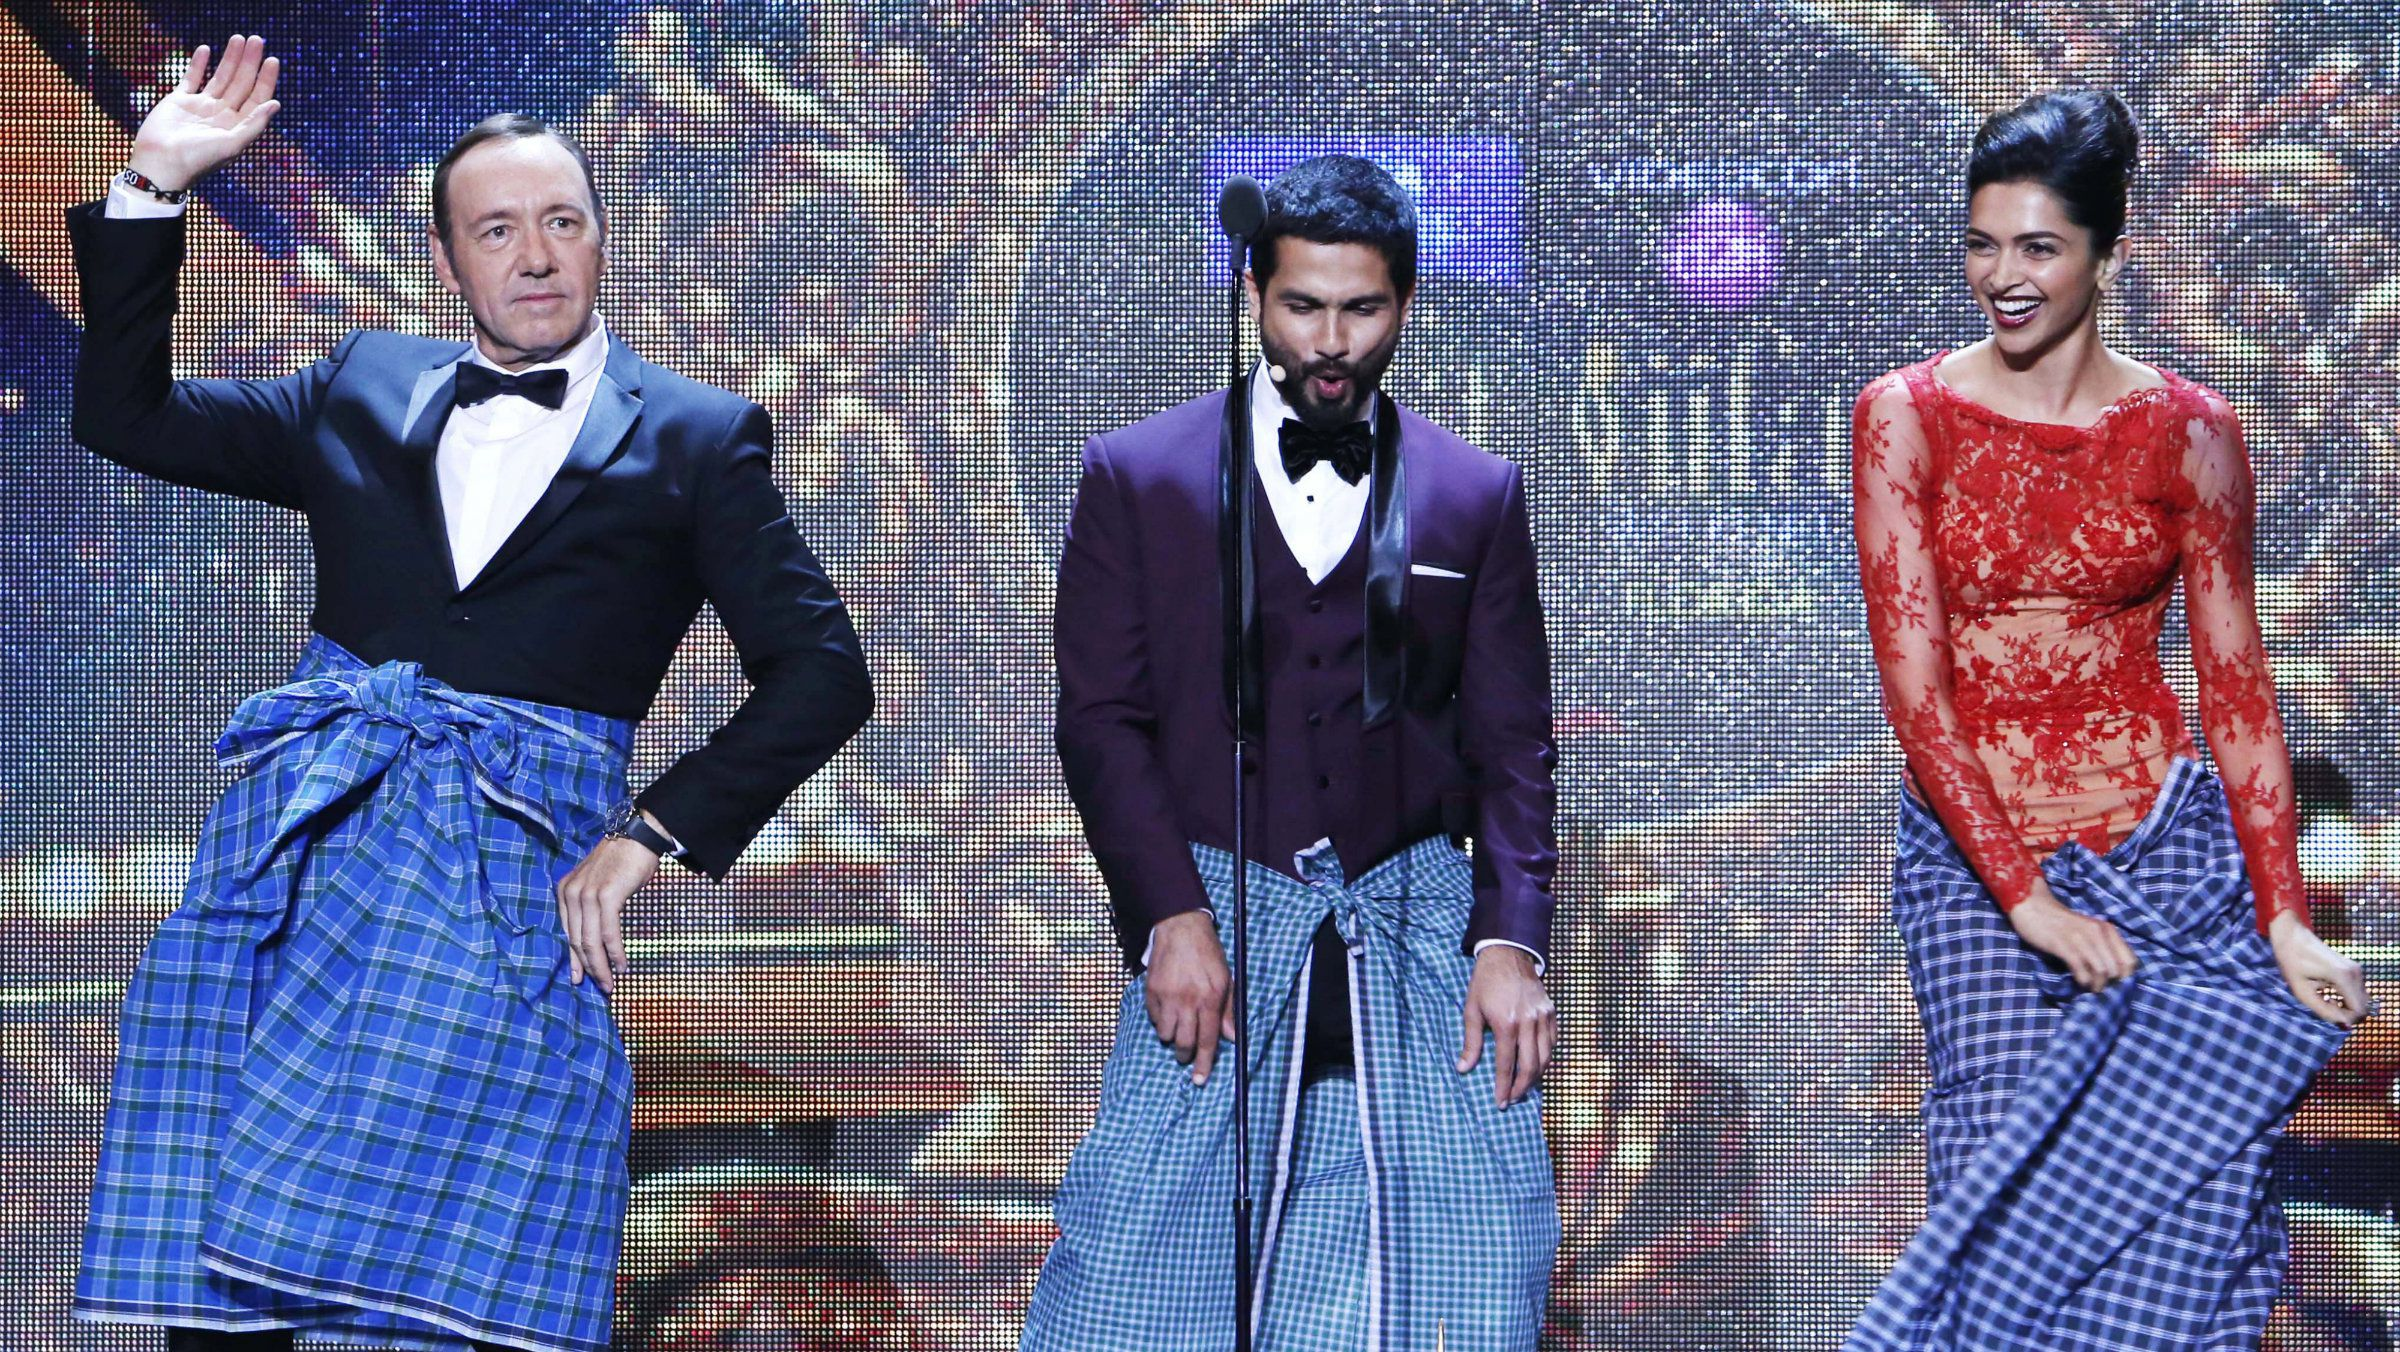 Kevin Spacey dances with Deepika Padukone and Shahid Kapoor.